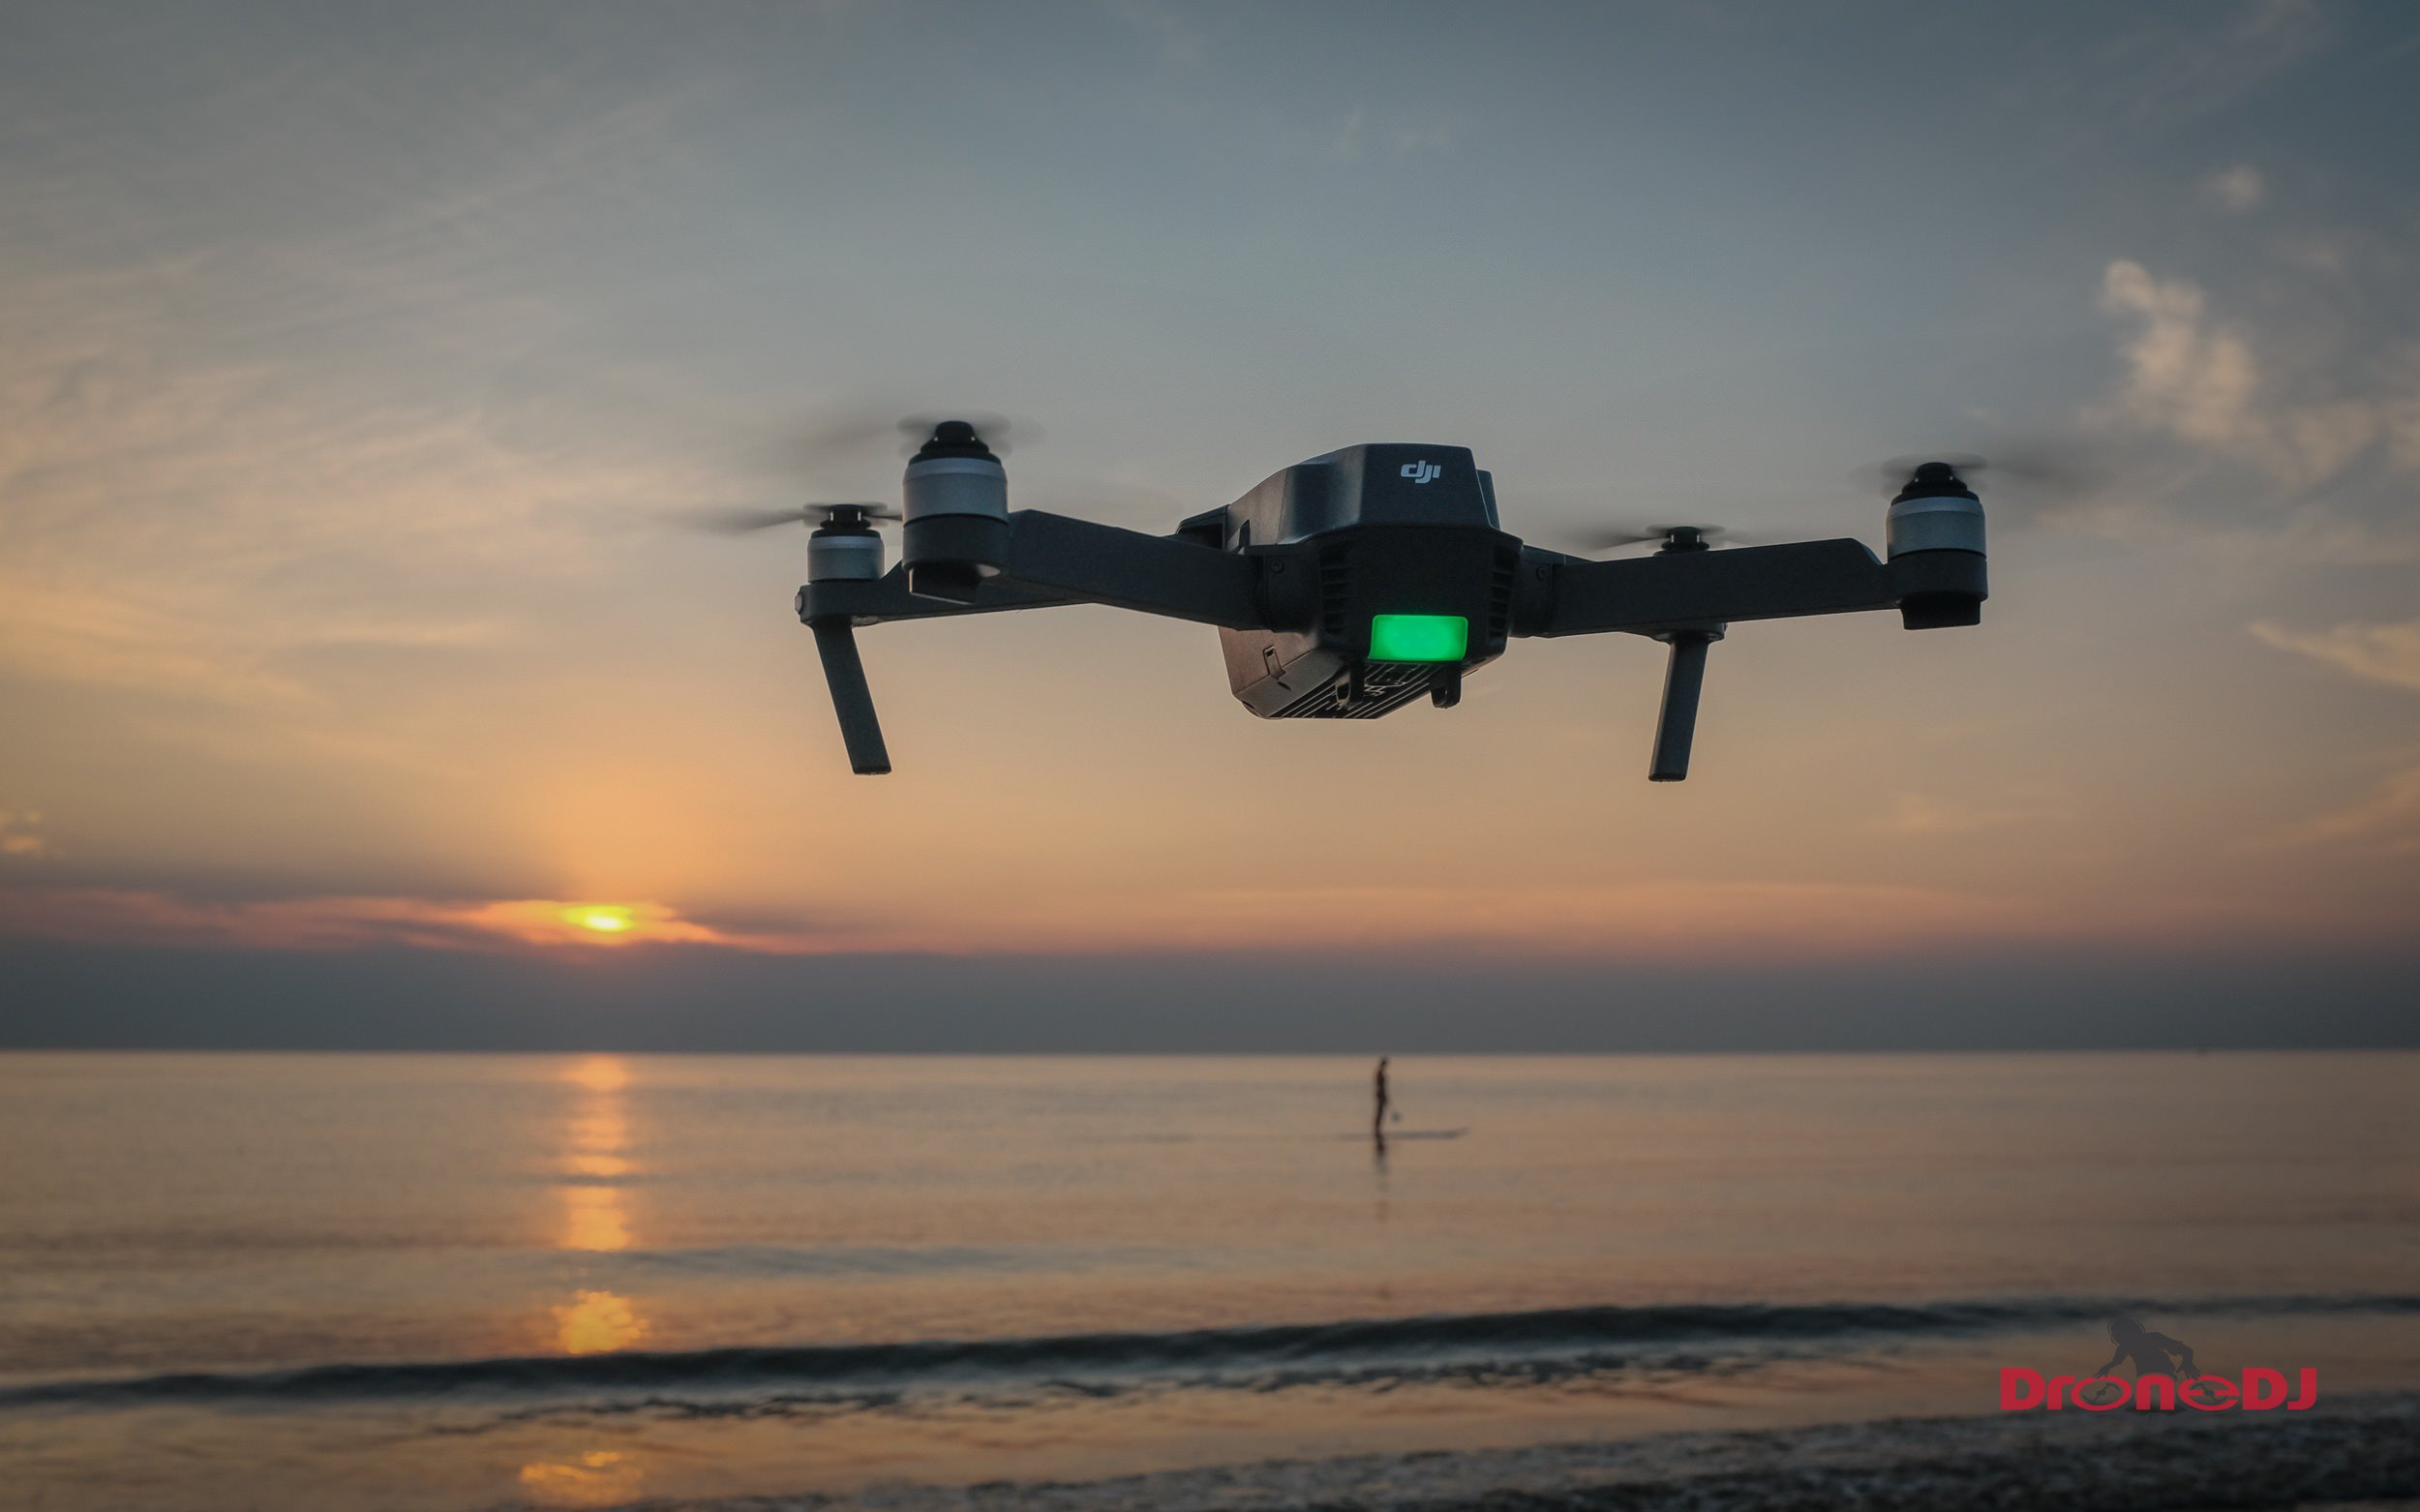 DJI Mavic Pro sets off into the sunset